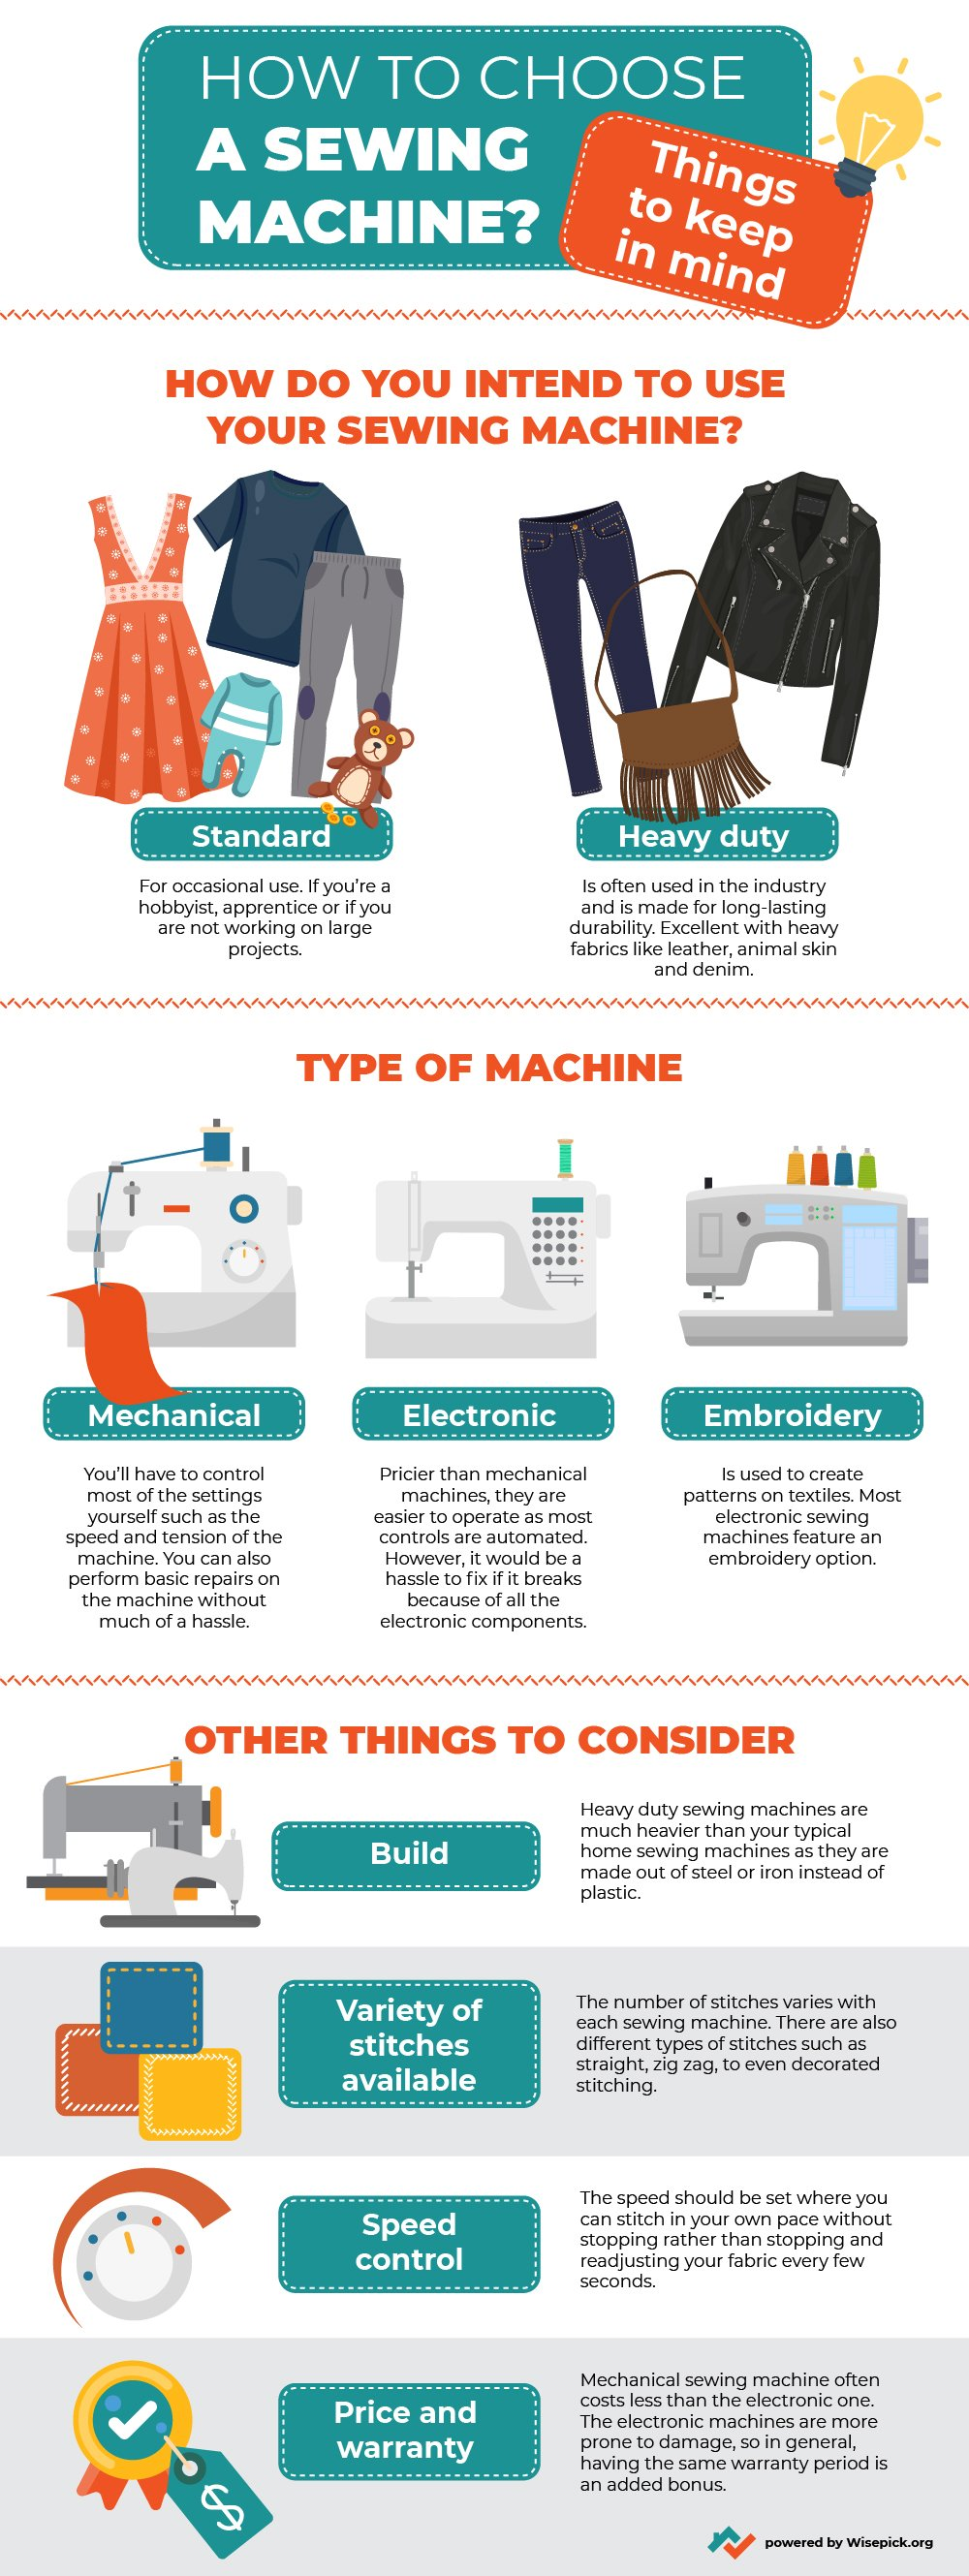 How To Choose a Sewing Machine: Things To Keep in Mind